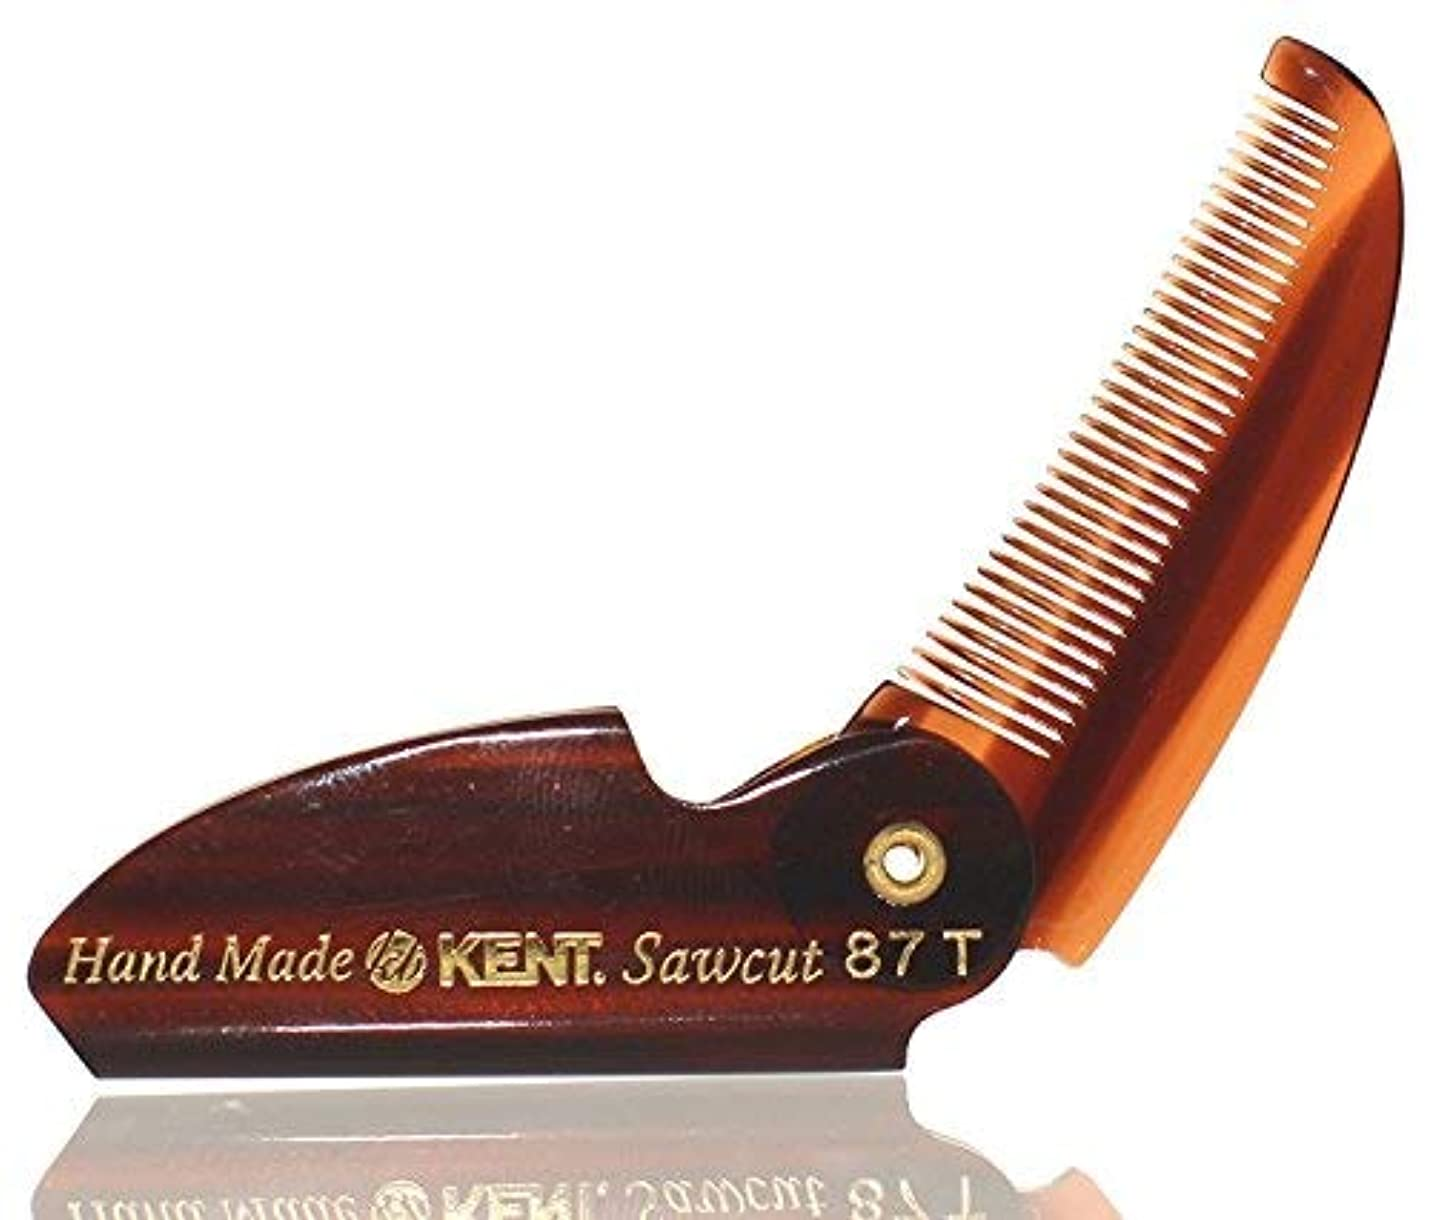 締め切りポーク光電BRAND NEW LIMITED EDITION KENT 87T FOLDING BEARD & MUSTACHE COMB by KENT COMBS (2 Pack) [並行輸入品]